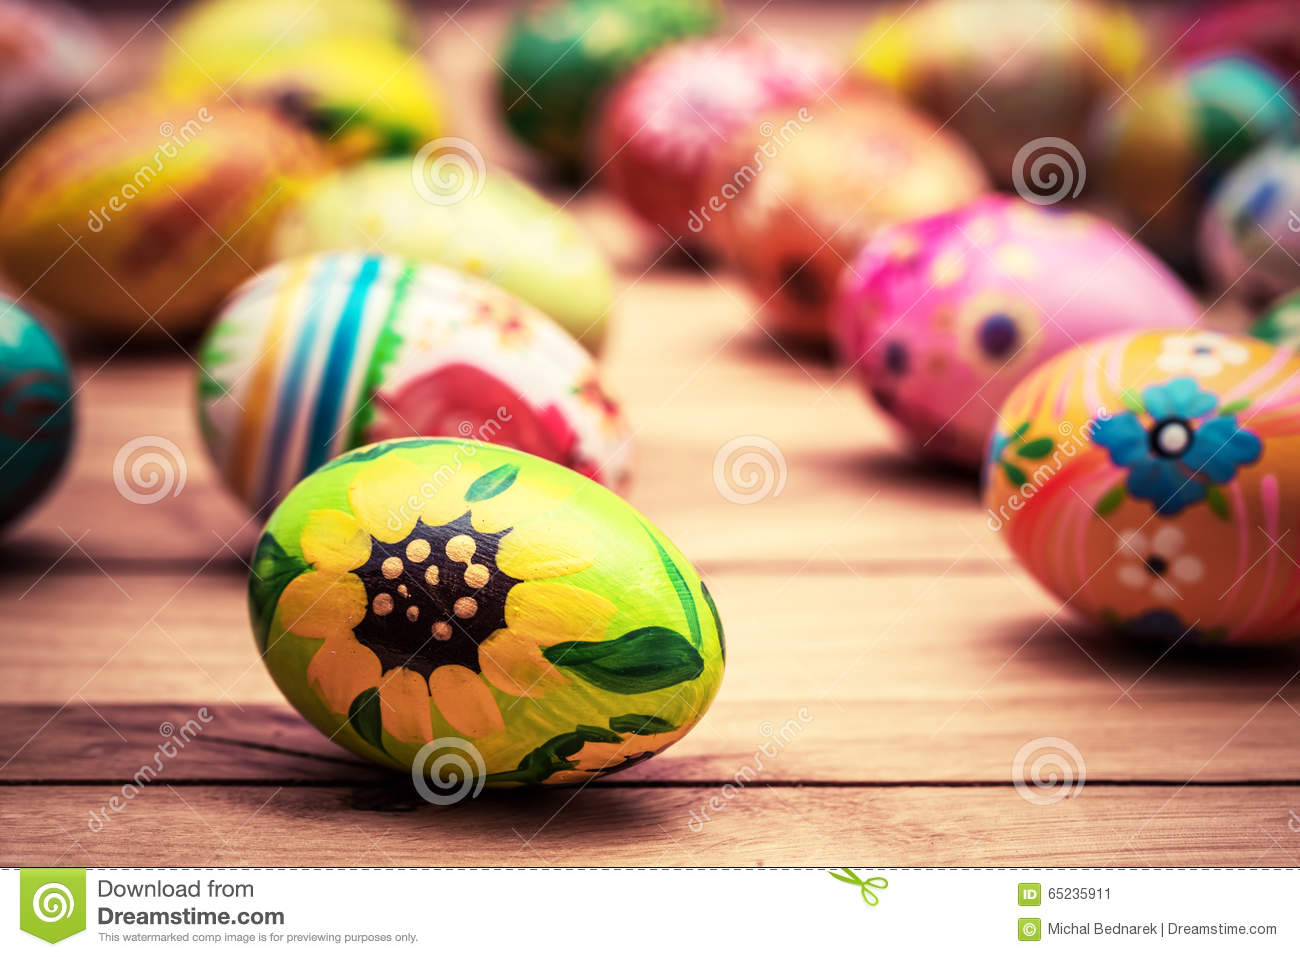 Colorful hand painted Easter eggs on wood. Unique handmade, vintage design.